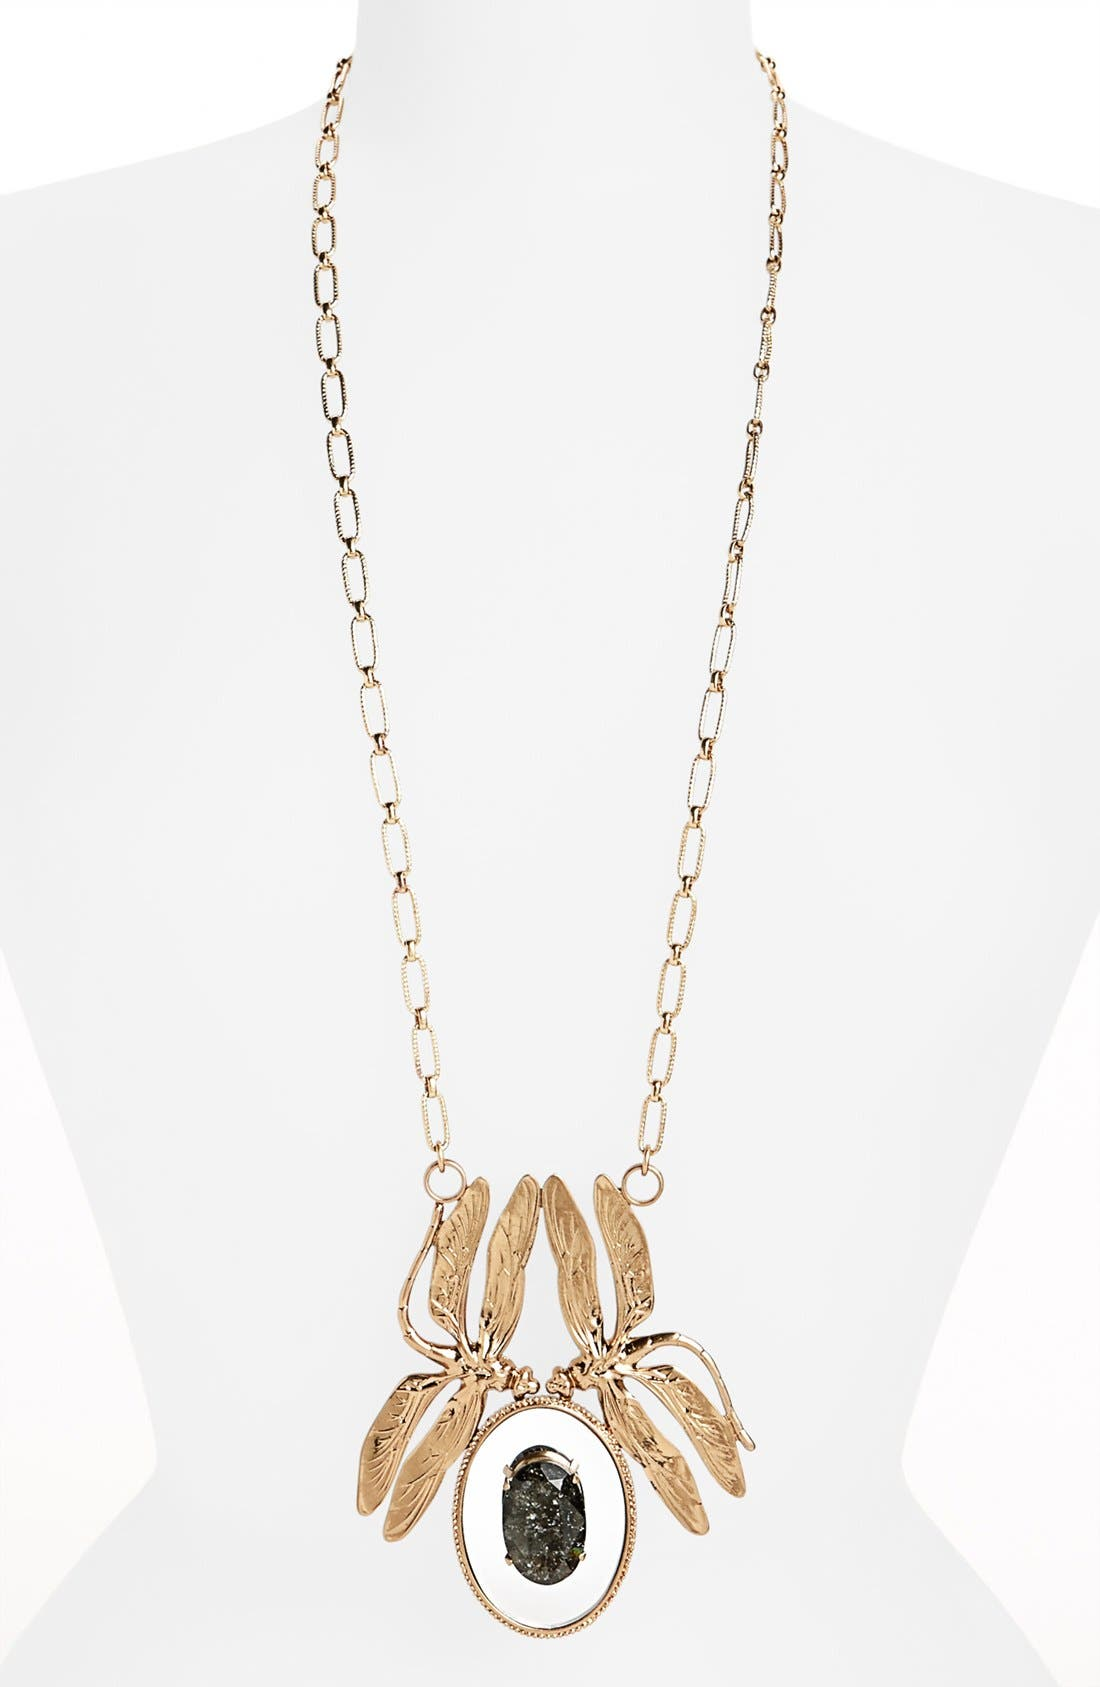 Alternate Image 1 Selected - Tory Burch 'Mirrored' Dragonfly Pendant Necklace